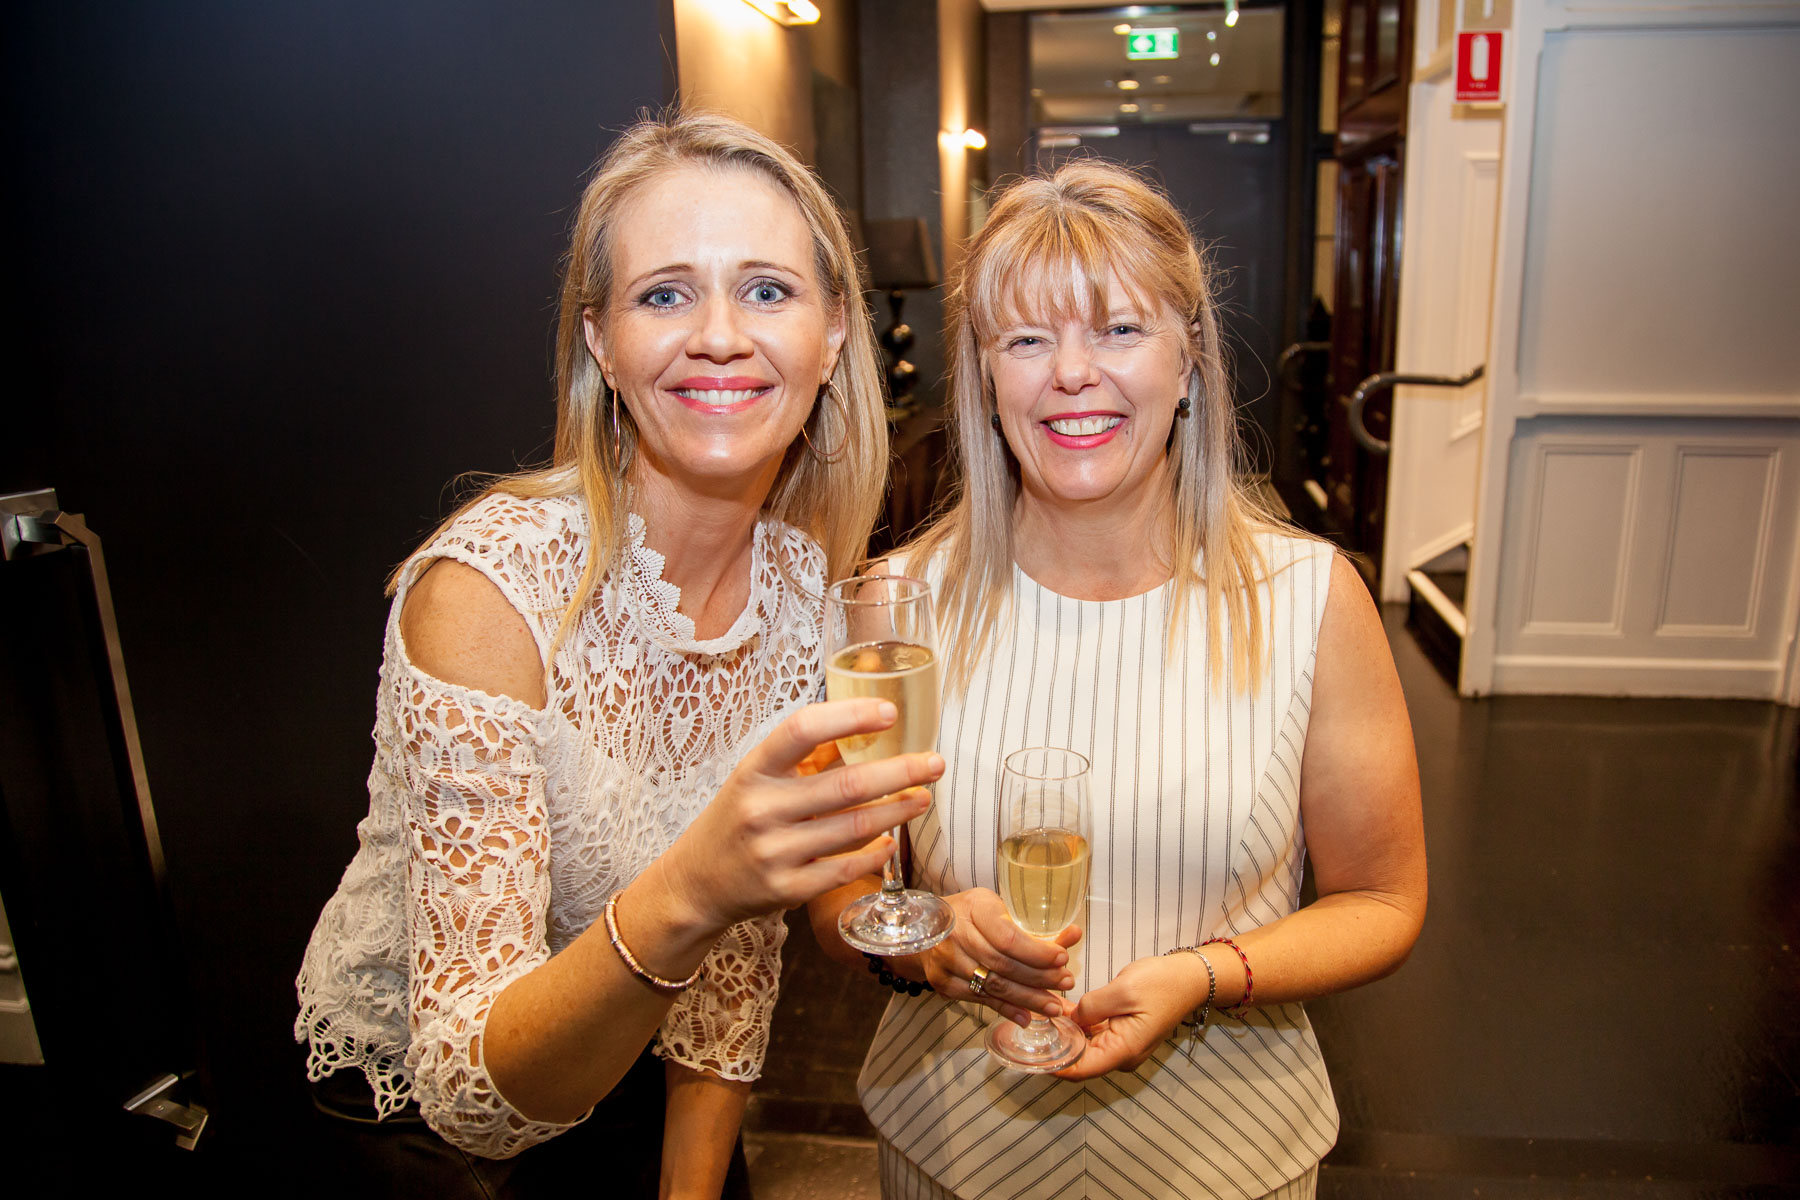 Jane Thomson with Melissa Brown. Melissa is co-owner & viticulturist for Gumtree Wines and she is a finalist this year for Viticulturist of the Year 2017